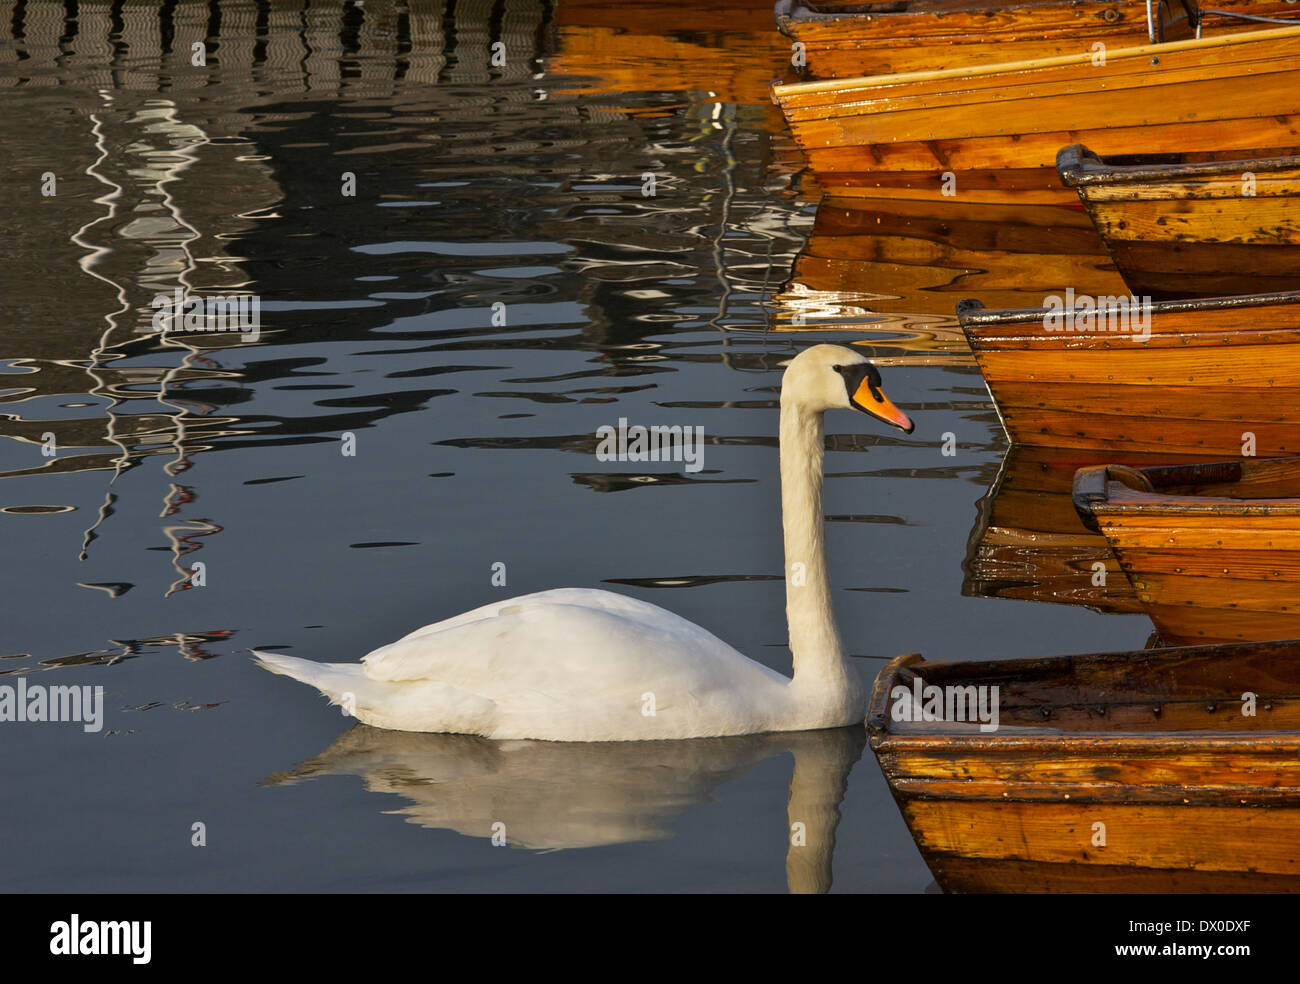 Mute swan in Bowness Bay, Lake Windermere, Lake District National Park, Cumbria, England UK - Stock Image